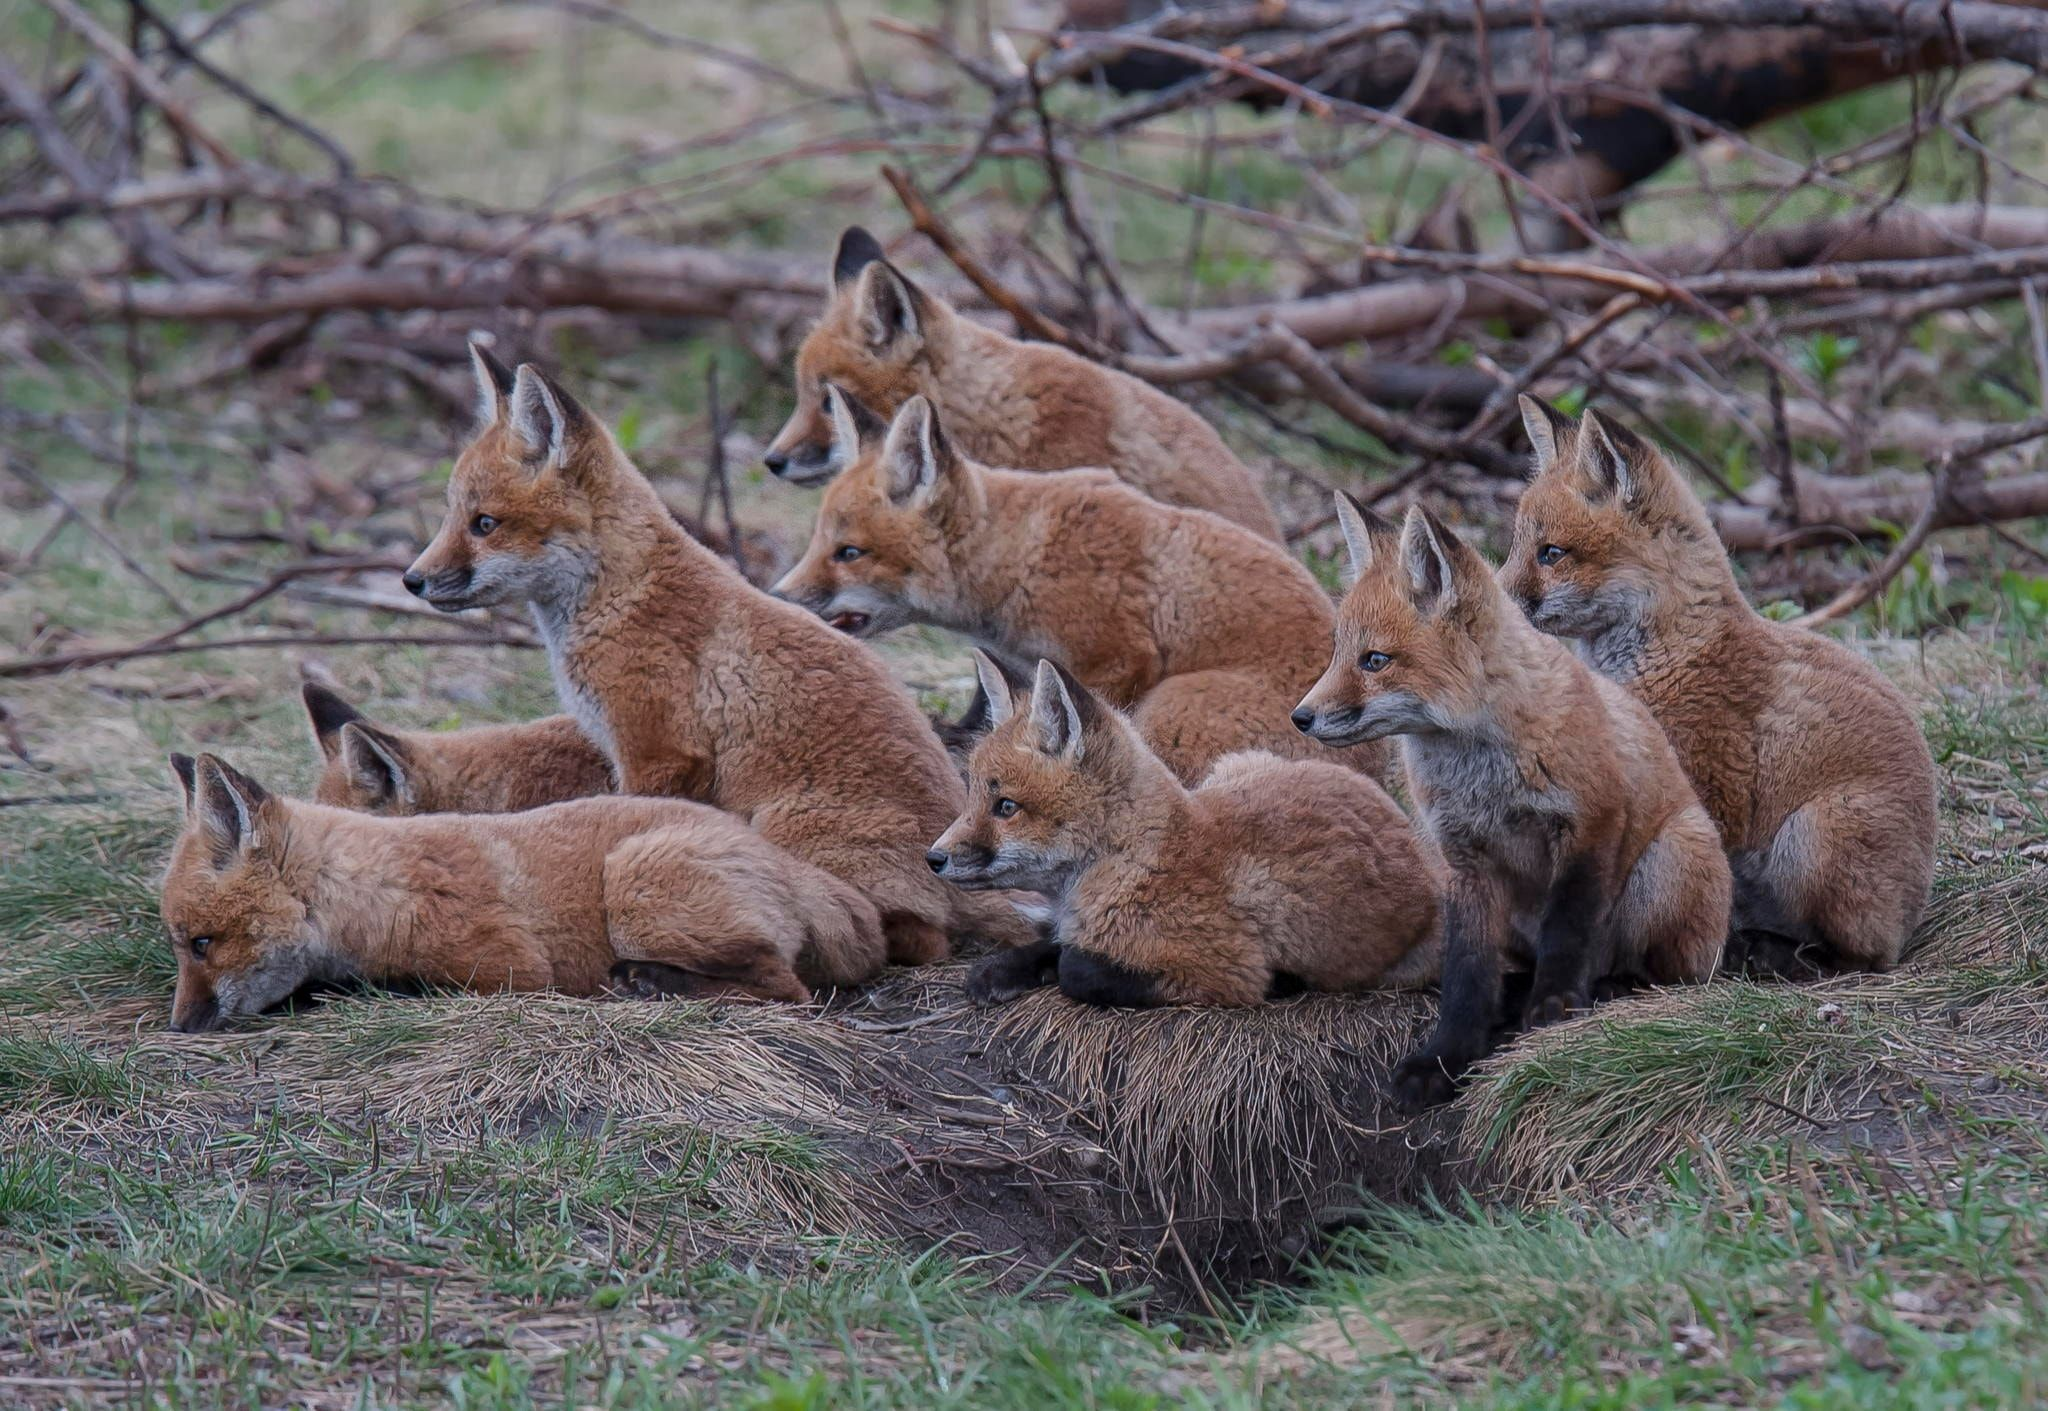 the litter of foxes - in Barrie, Ontario, Canada there was a litter of red fox that consisted of 8 kits...